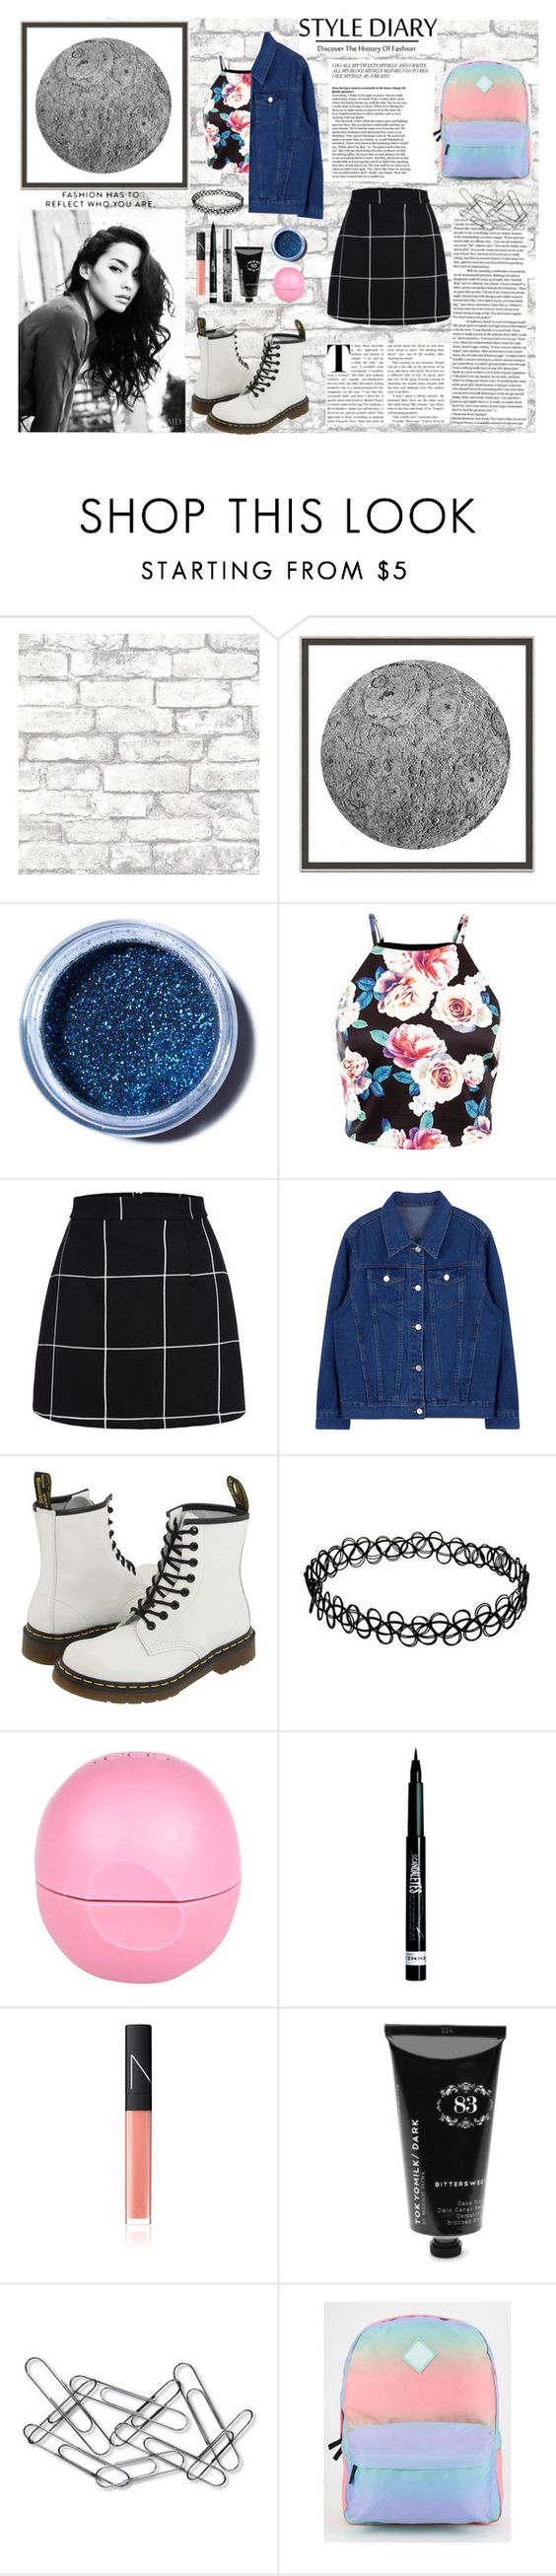 """Style Diary"" by mada2799 on Polyvore featuring Brewster Home Fashions, Wendover Art Group, Lime Crime, Dr. Martens, River Island, Rimmel, NARS Cosmetics, TokyoMilk, Home Decorators Collection and Vans"